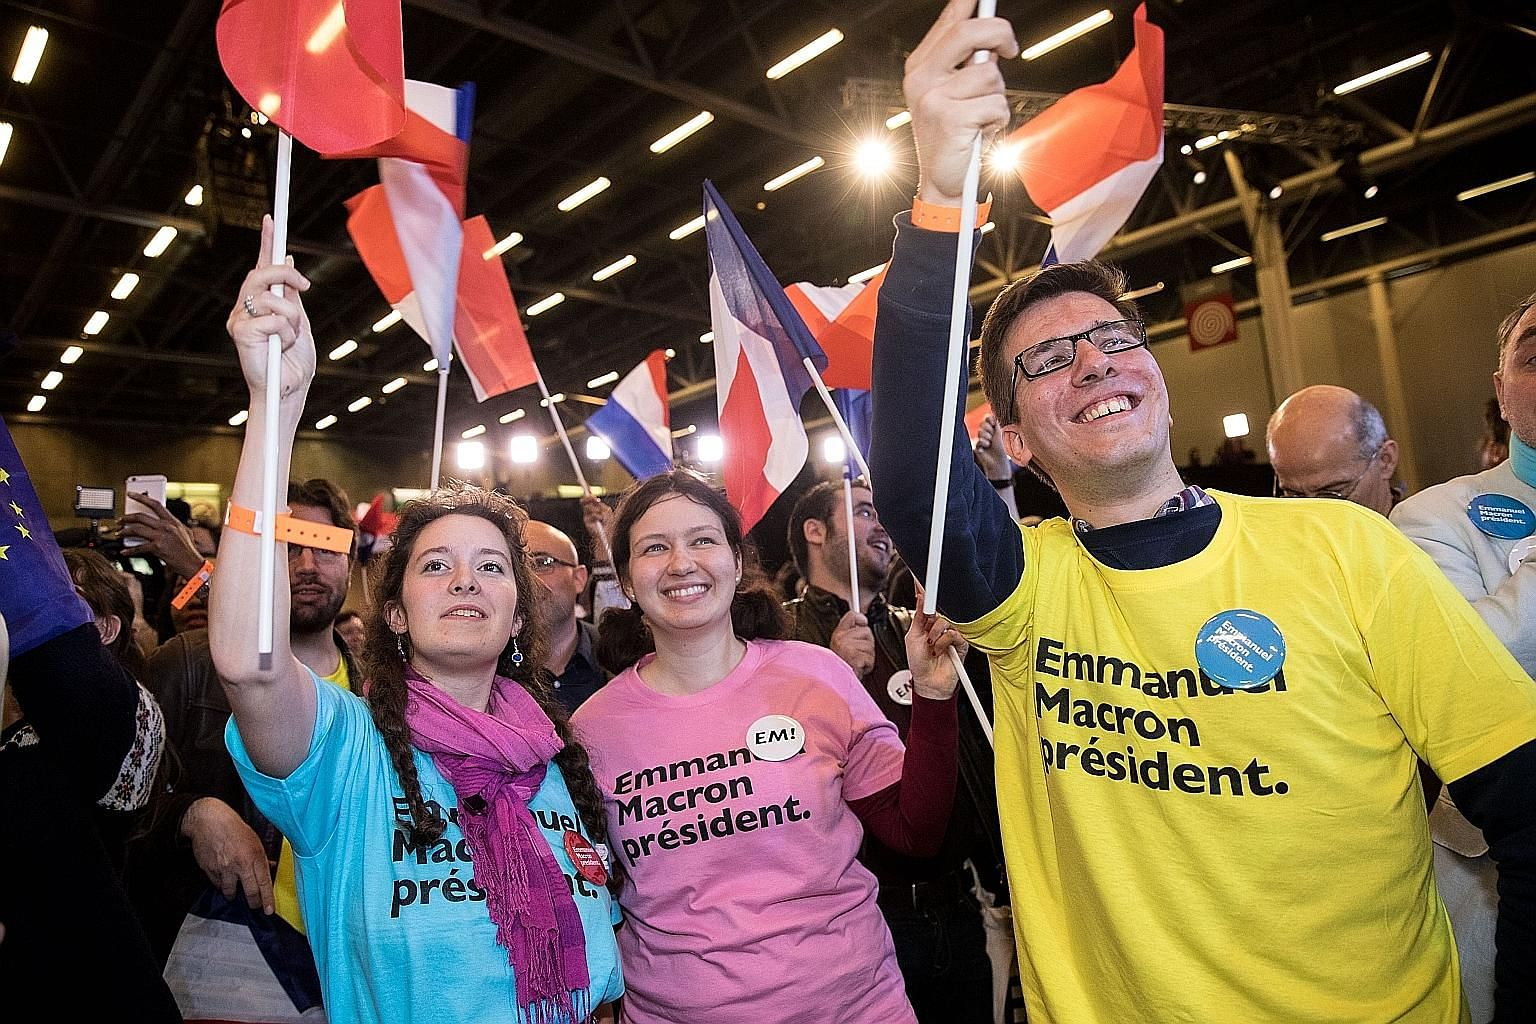 Supporters of Mr Emmanuel Macron and Ms Marine Le Pen at the En Marche! HQ (top right) and at a National Front party celebrating Sunday's results.